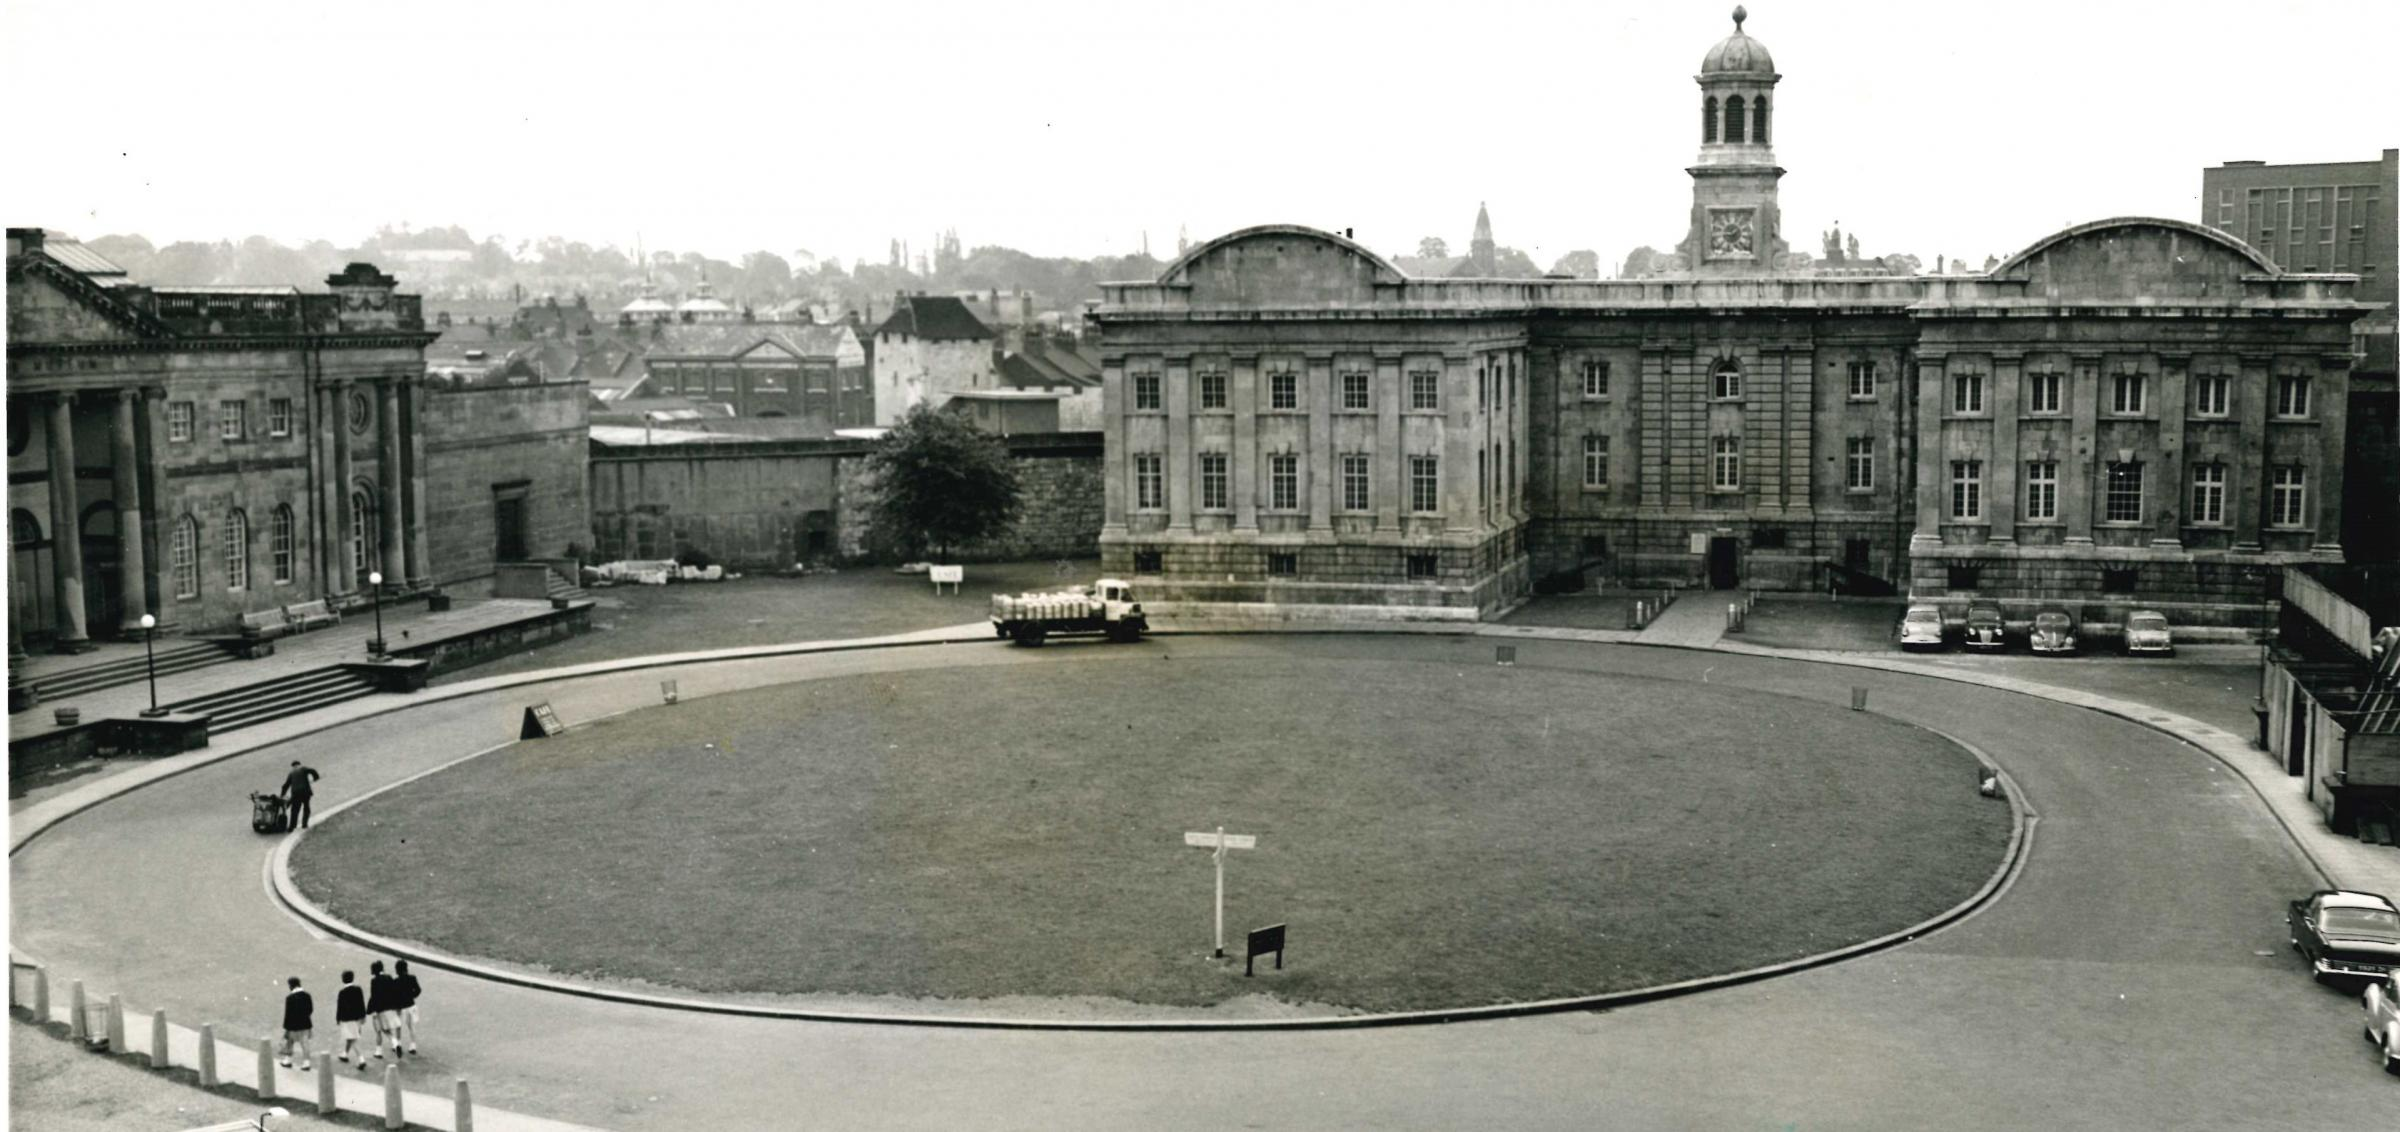 The Eye of York in 1964, minus the new conclourse that now forms the connecting link between the two halves of the Castle Museum